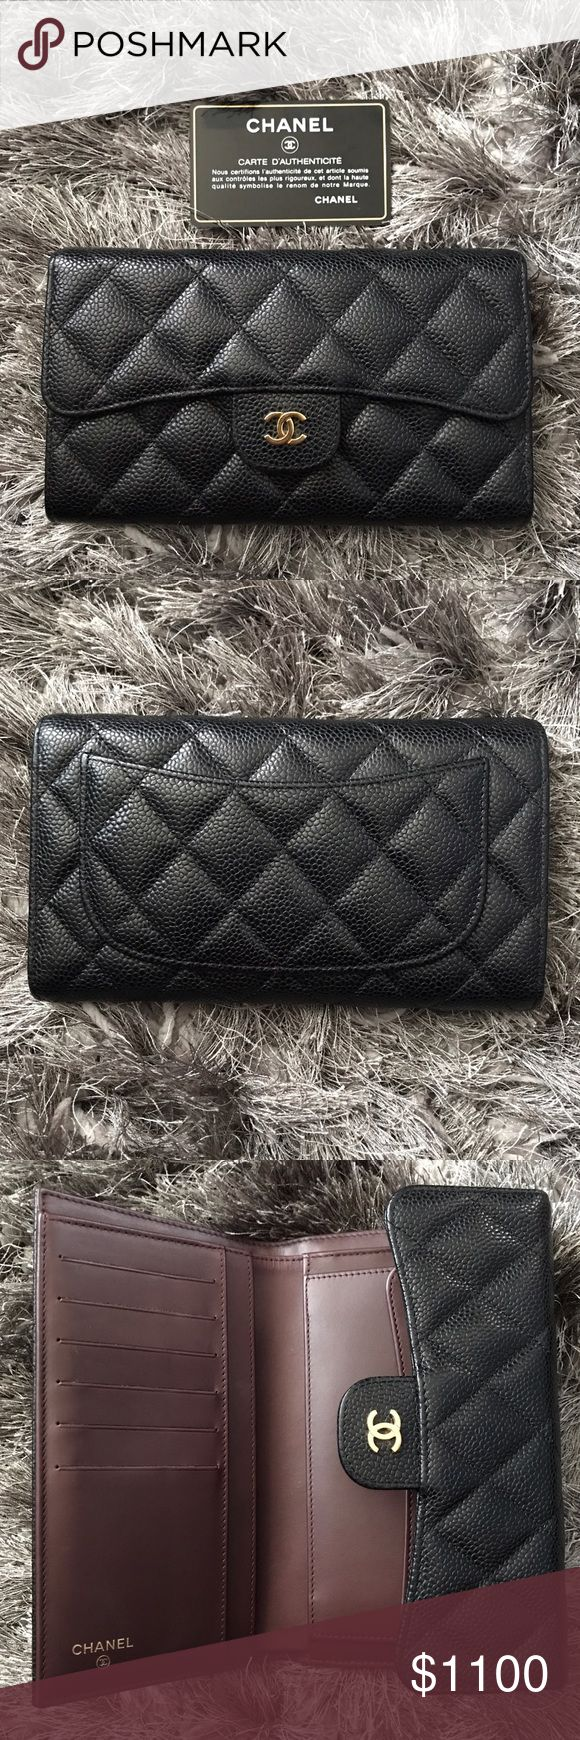 ✨ CHANEL Flap Wallet in Caviar with GHW ✨AUTHENTIC✨  PRE LOVED CHANEL FLAP QUILTED WALLET  It has signs of wear. Credit Card Slots are a bit stretched. On Coin Pouch part there's a bit of  indentation. Please See Pictures.  Made in Spain   COMES WITH AUTHENTICITY CARD, BOX, DUST BAG AND RIBBON  **FIRM on Price 🚫 NO Low offers please CHANEL Bags Wallets